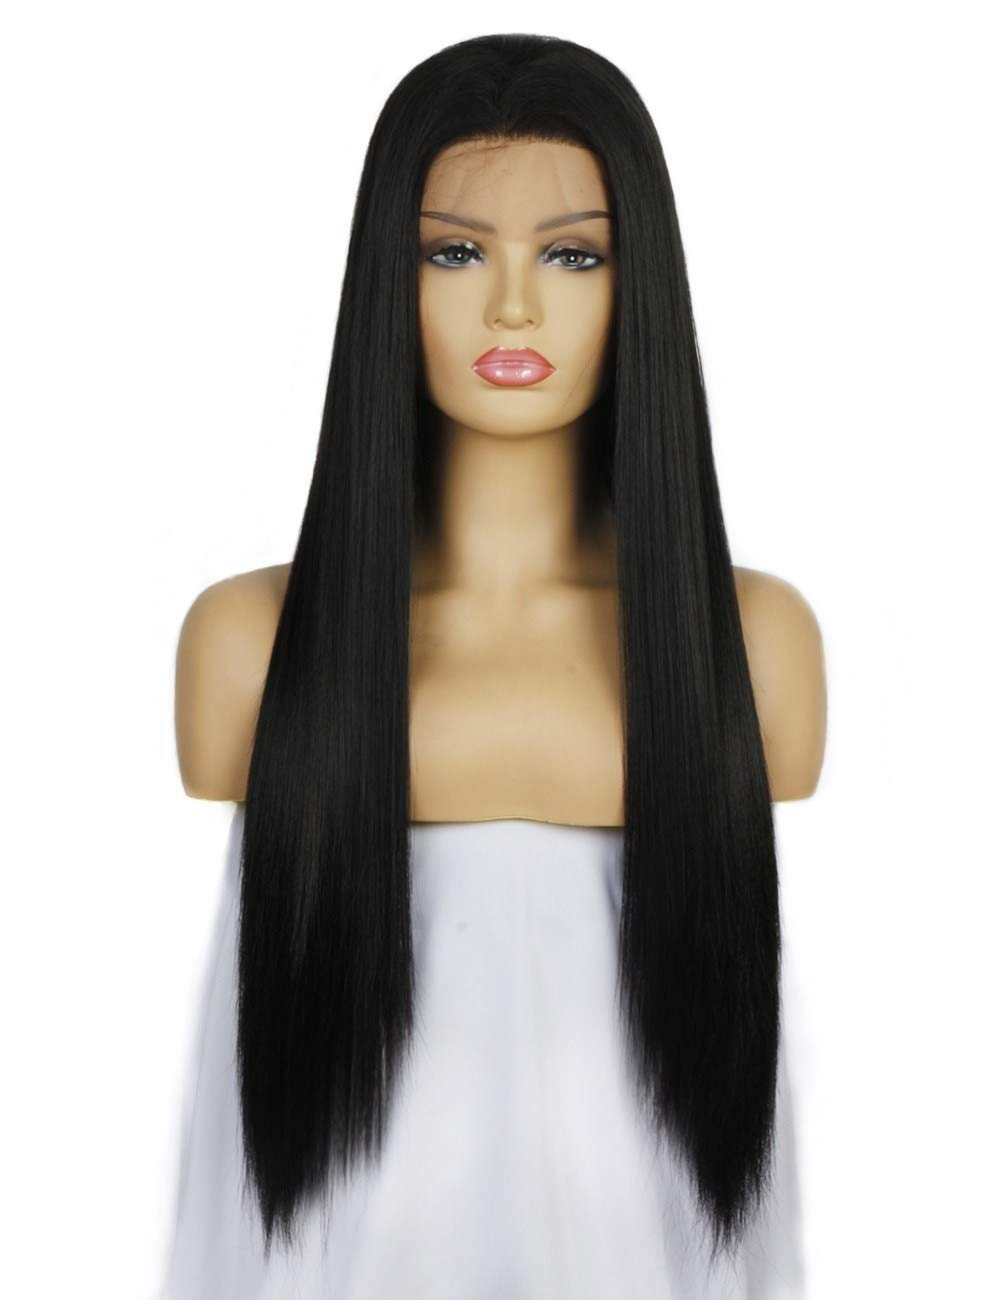 30% HUMAN Hair+70% KANEKALON Heat Resistan Fibers,Light Yaki Straight Wigs for Women,22 Inchs Nature Black Lace Front Wig,Life Diaries Synthetic Wig,Pre Plucked Natural Hairline with Baby Hair